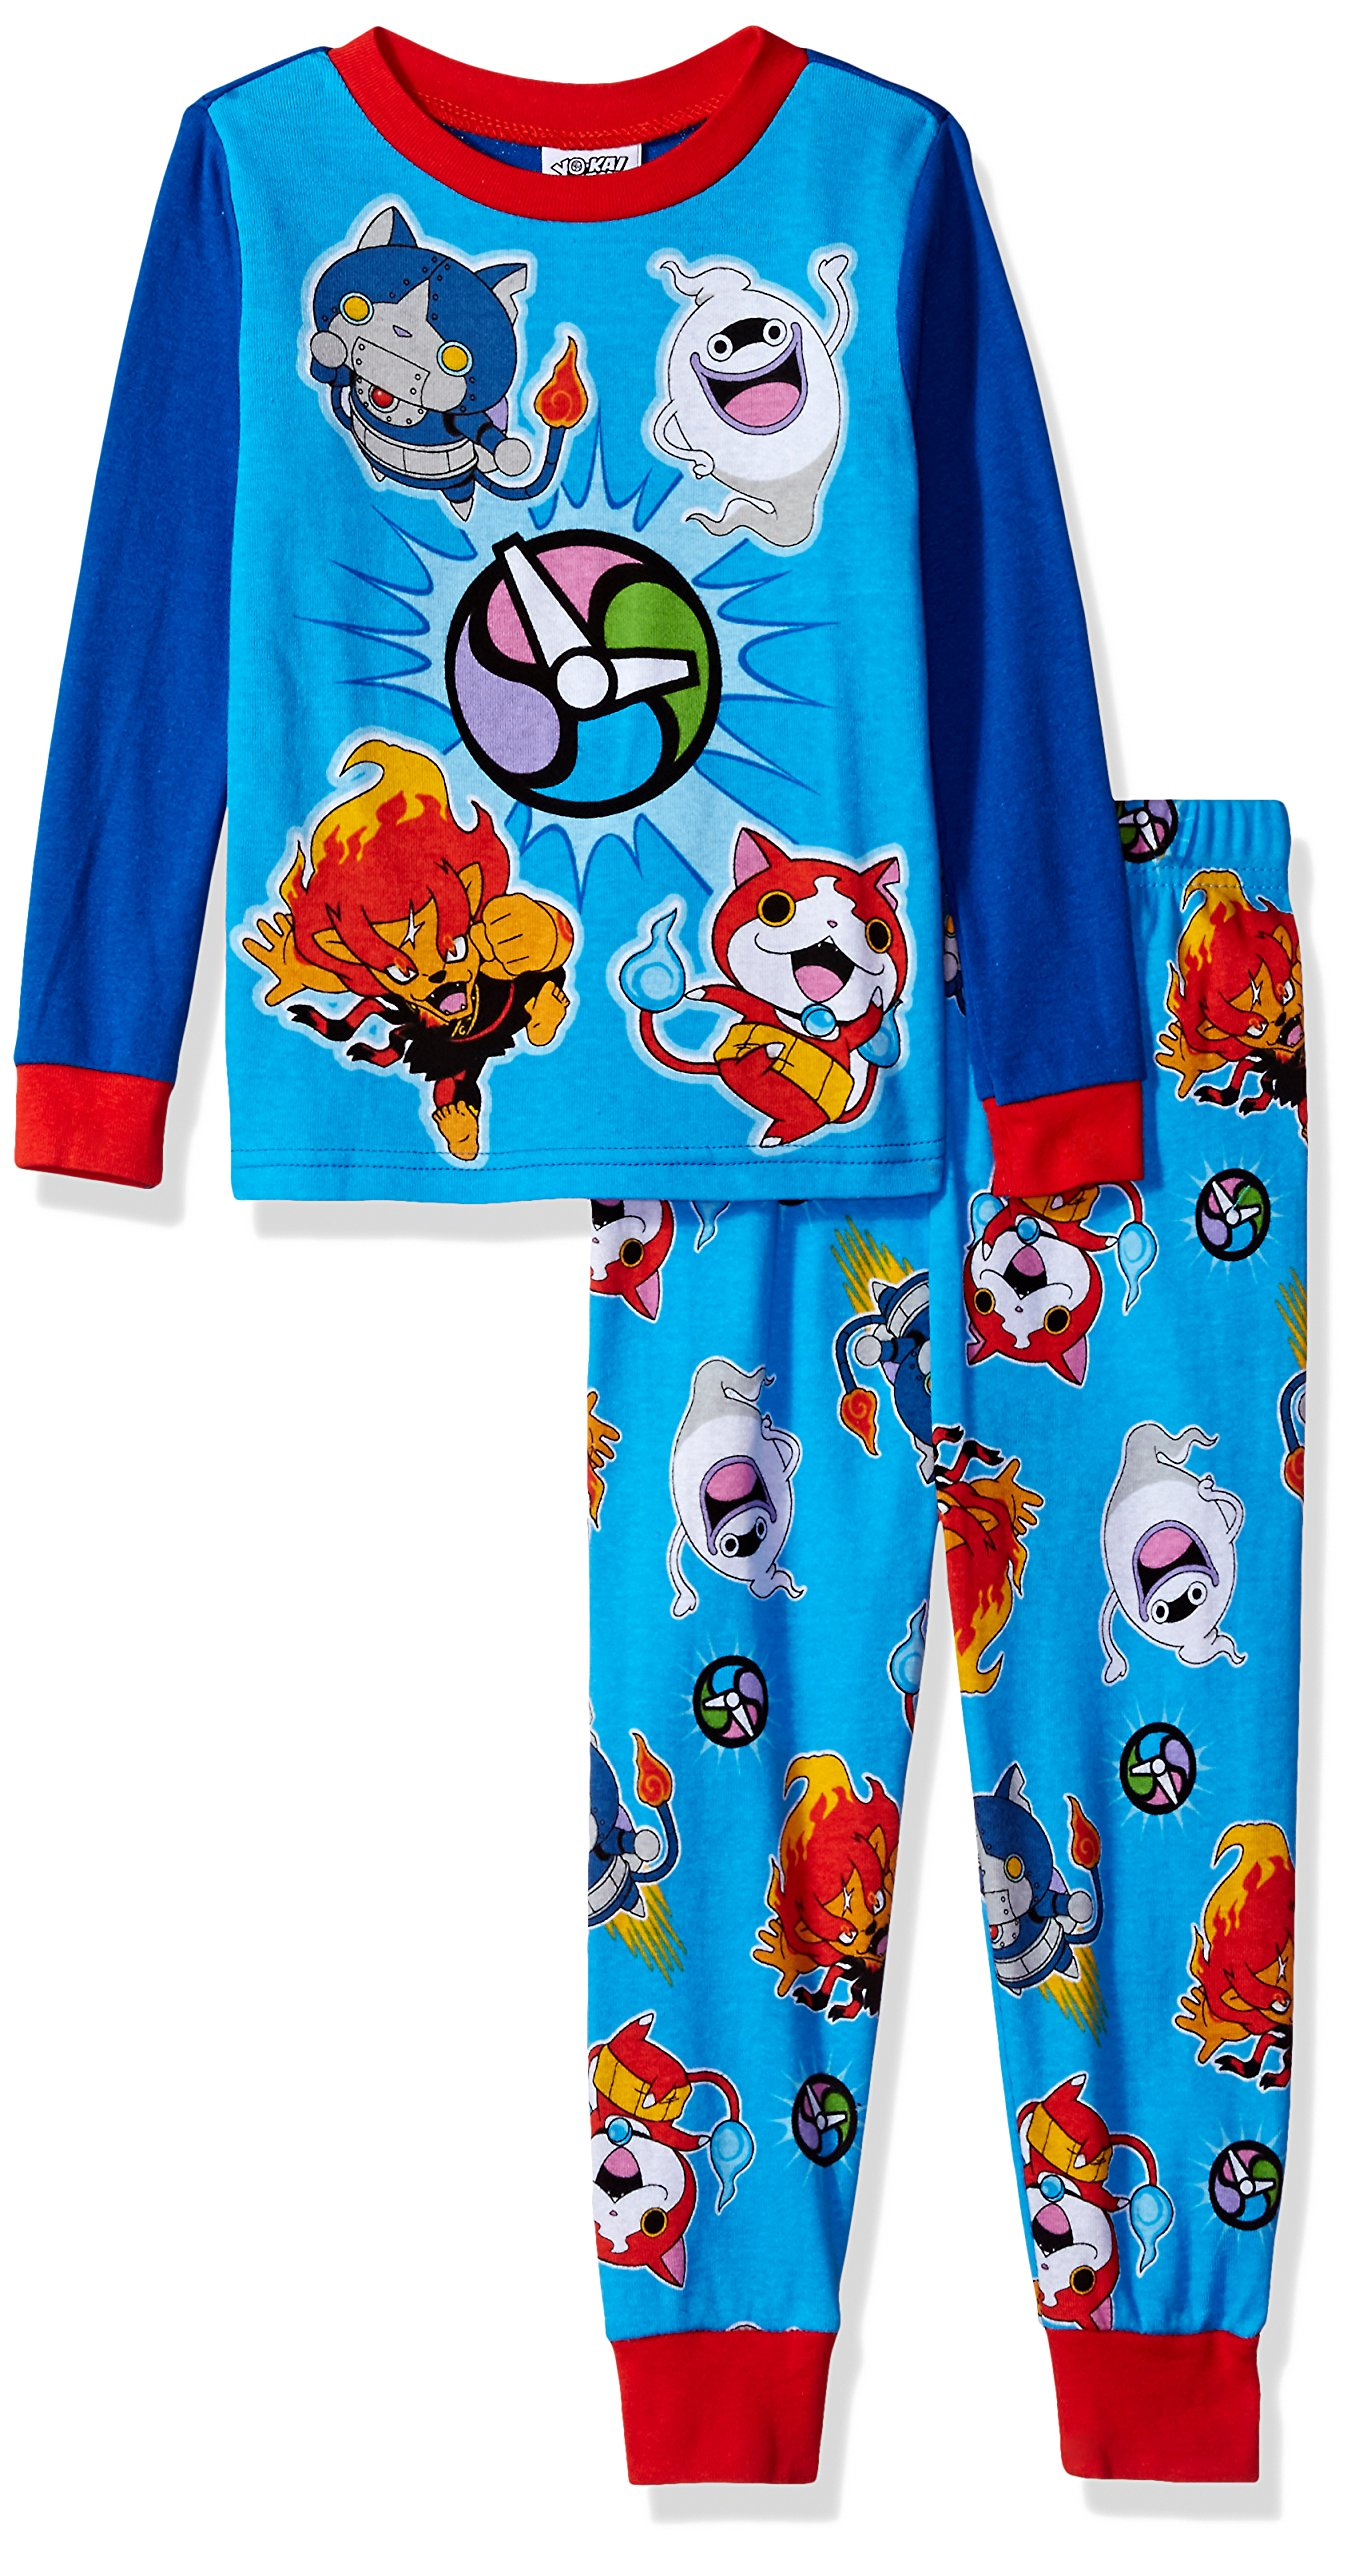 Yo-Kai Watch Big Boys' 2-Piece Cotton Pajama Set, You/Kai Blue, 10